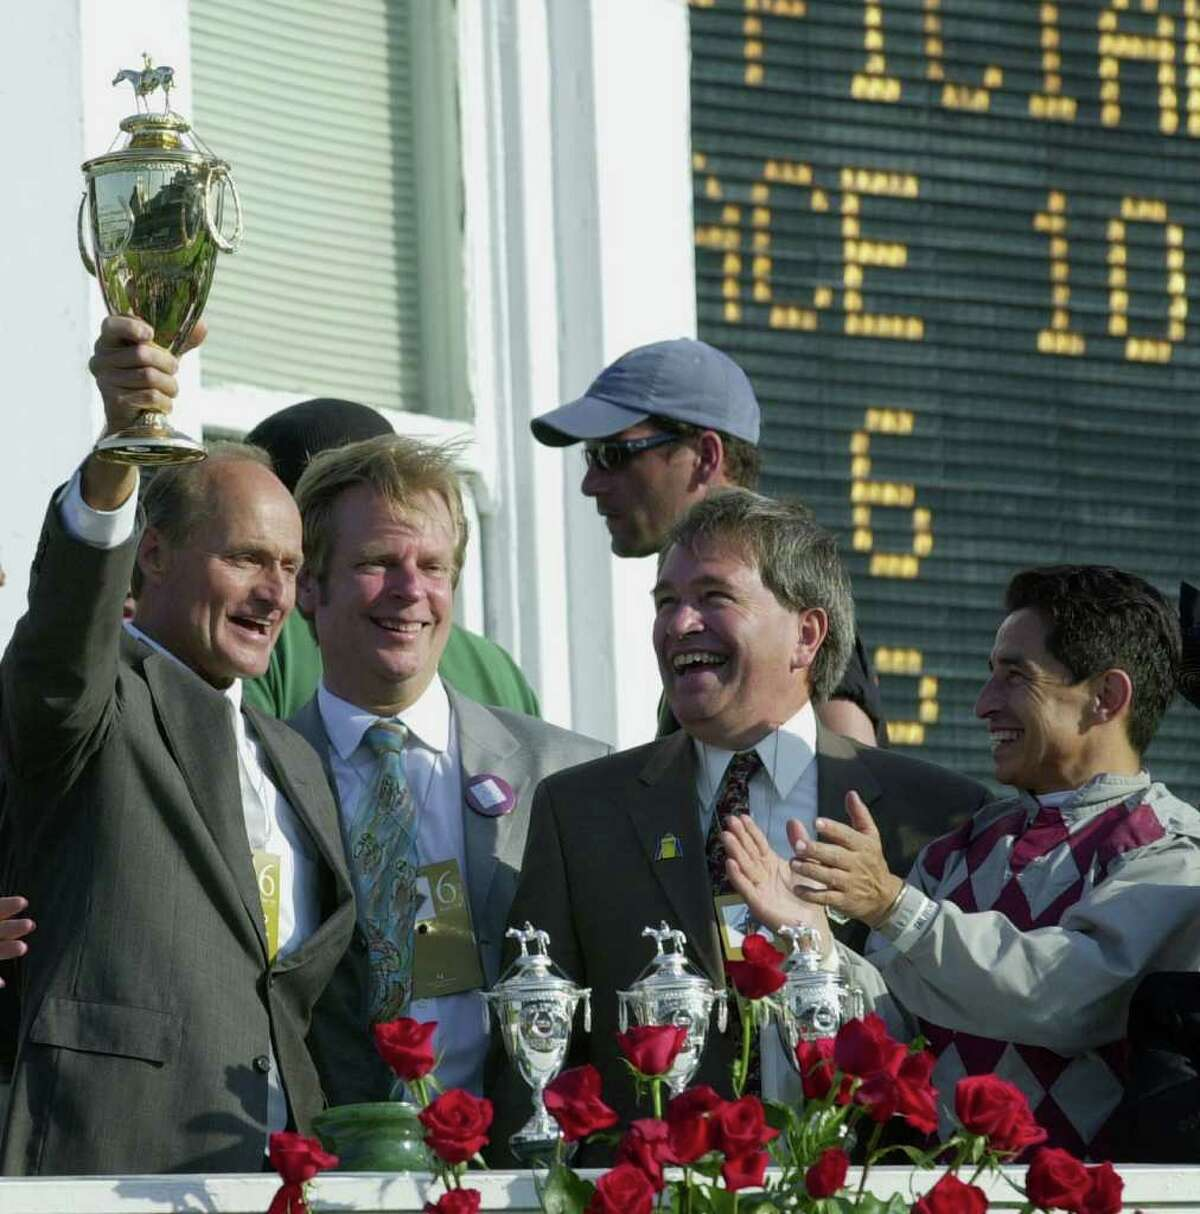 Trainer Barclay Tagg, left, holds the trophy as, from second left, owners David Mahan and Jackson Knowlton and jockey Jose Santos, applaud after Funny Cide won the 129th running of the Kentucky Derby at Churchill Downs, Saturday, May 3, 2003 in Louisville, Ky. (AP Photo/Ed Reinke)